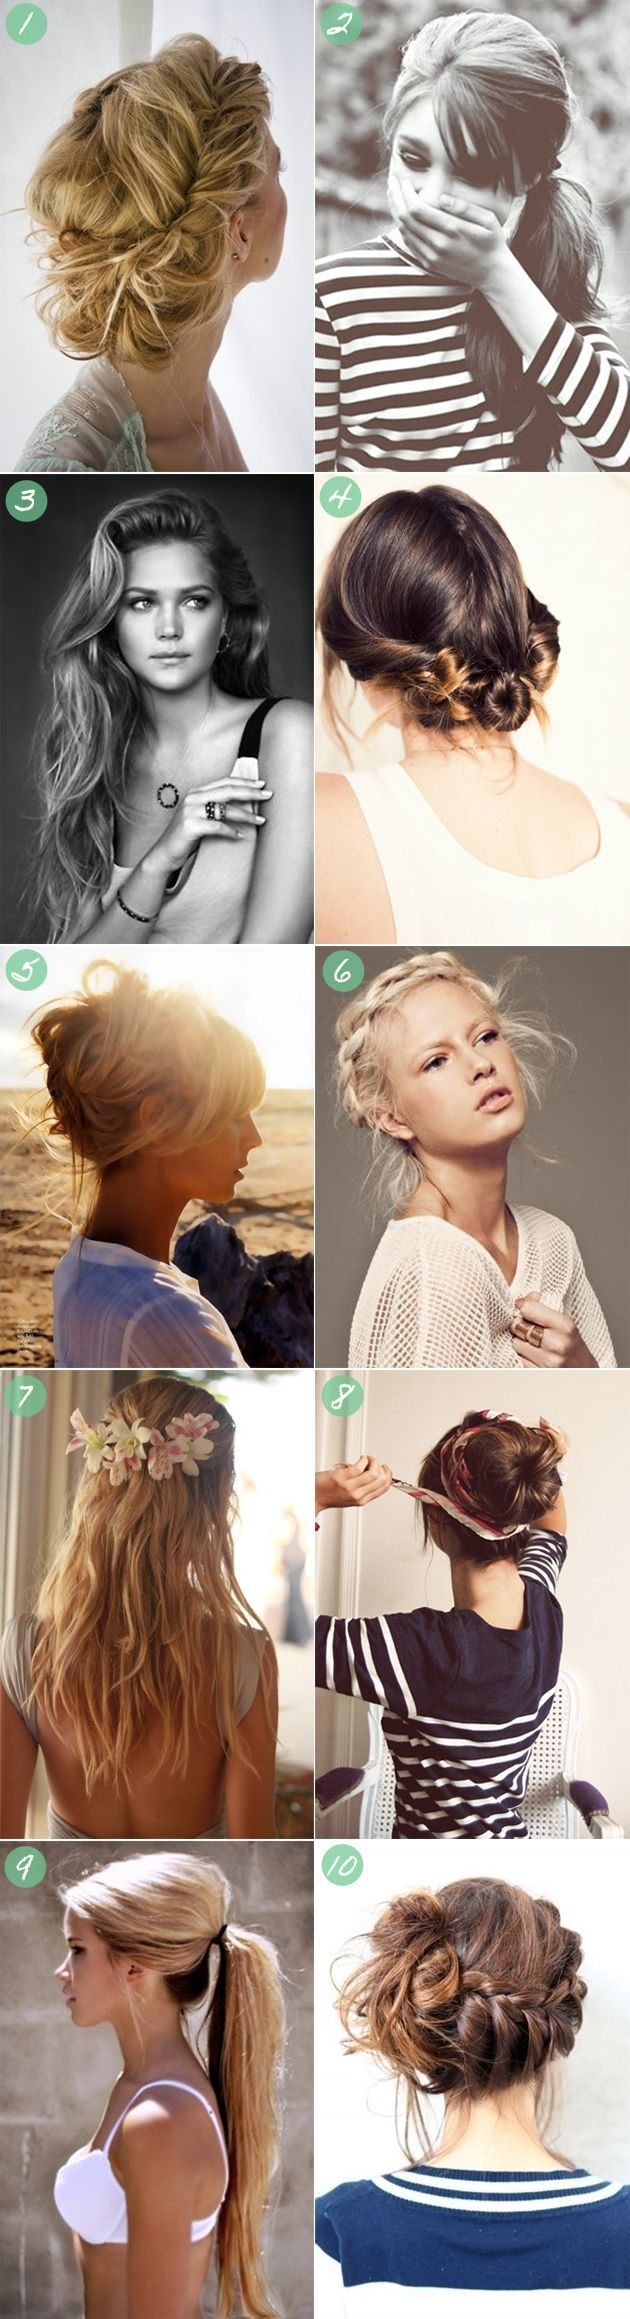 Half Up Half Down Hairstyles for Long, Short and Medium Hair